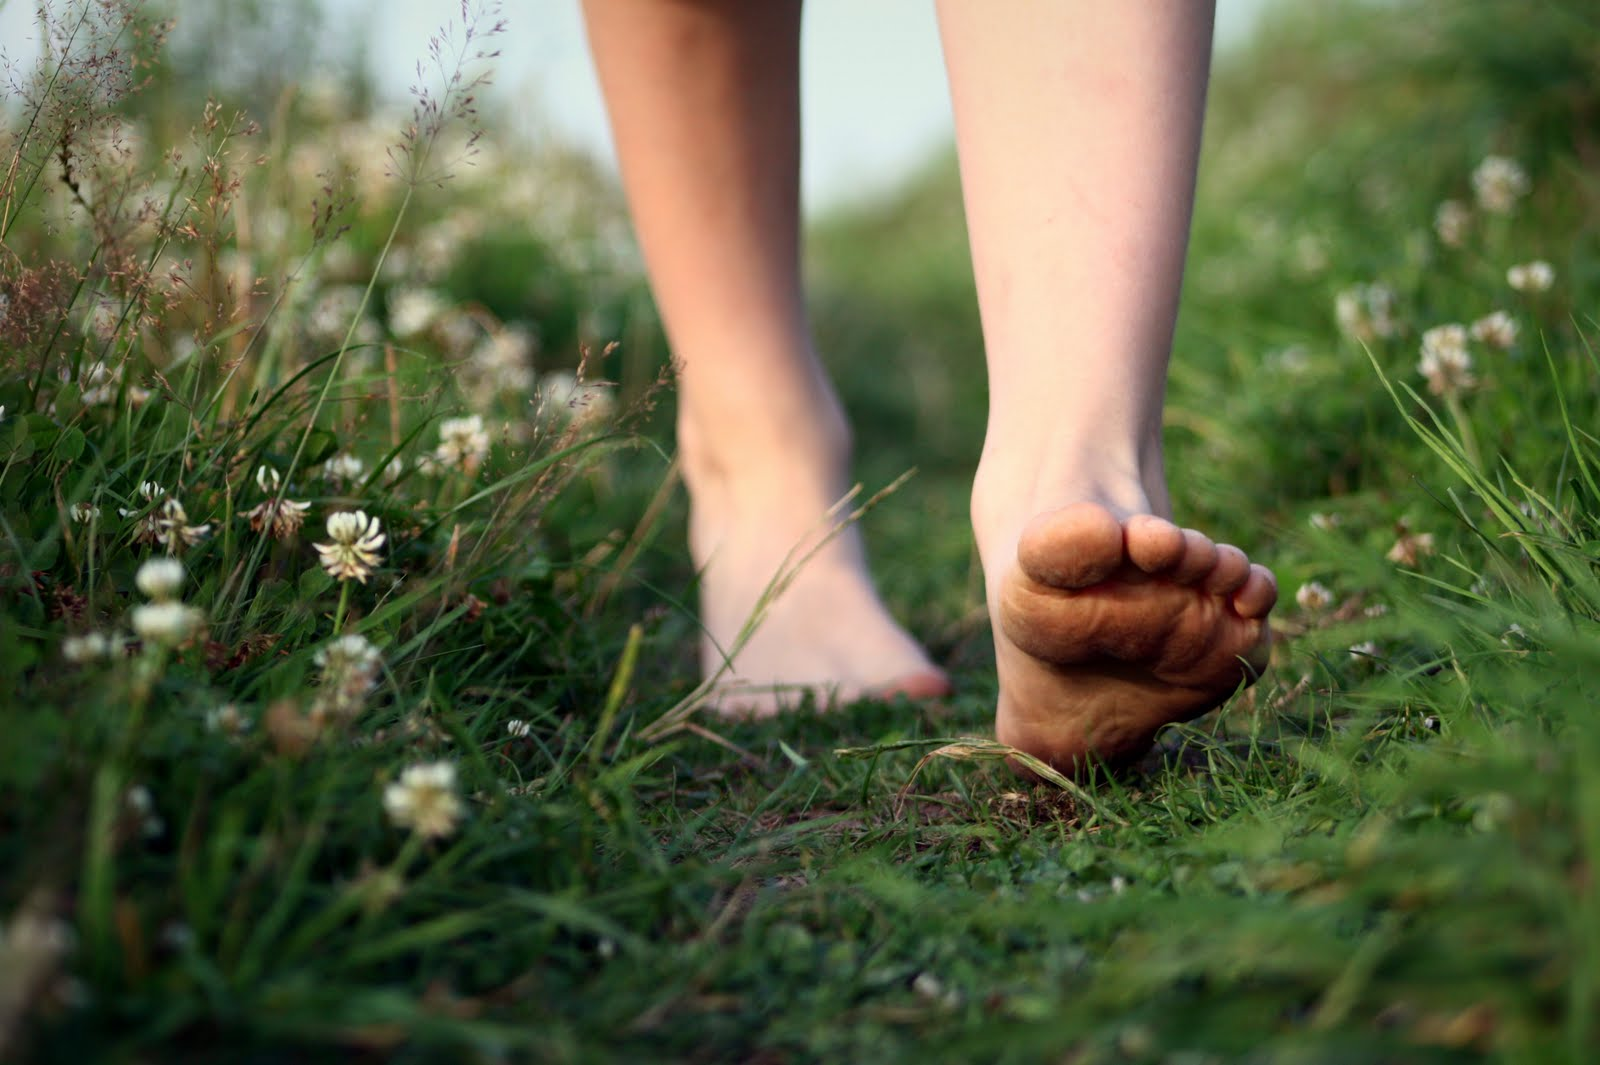 Walking barefoot outside in the grass or dirt is also a great way to ground.